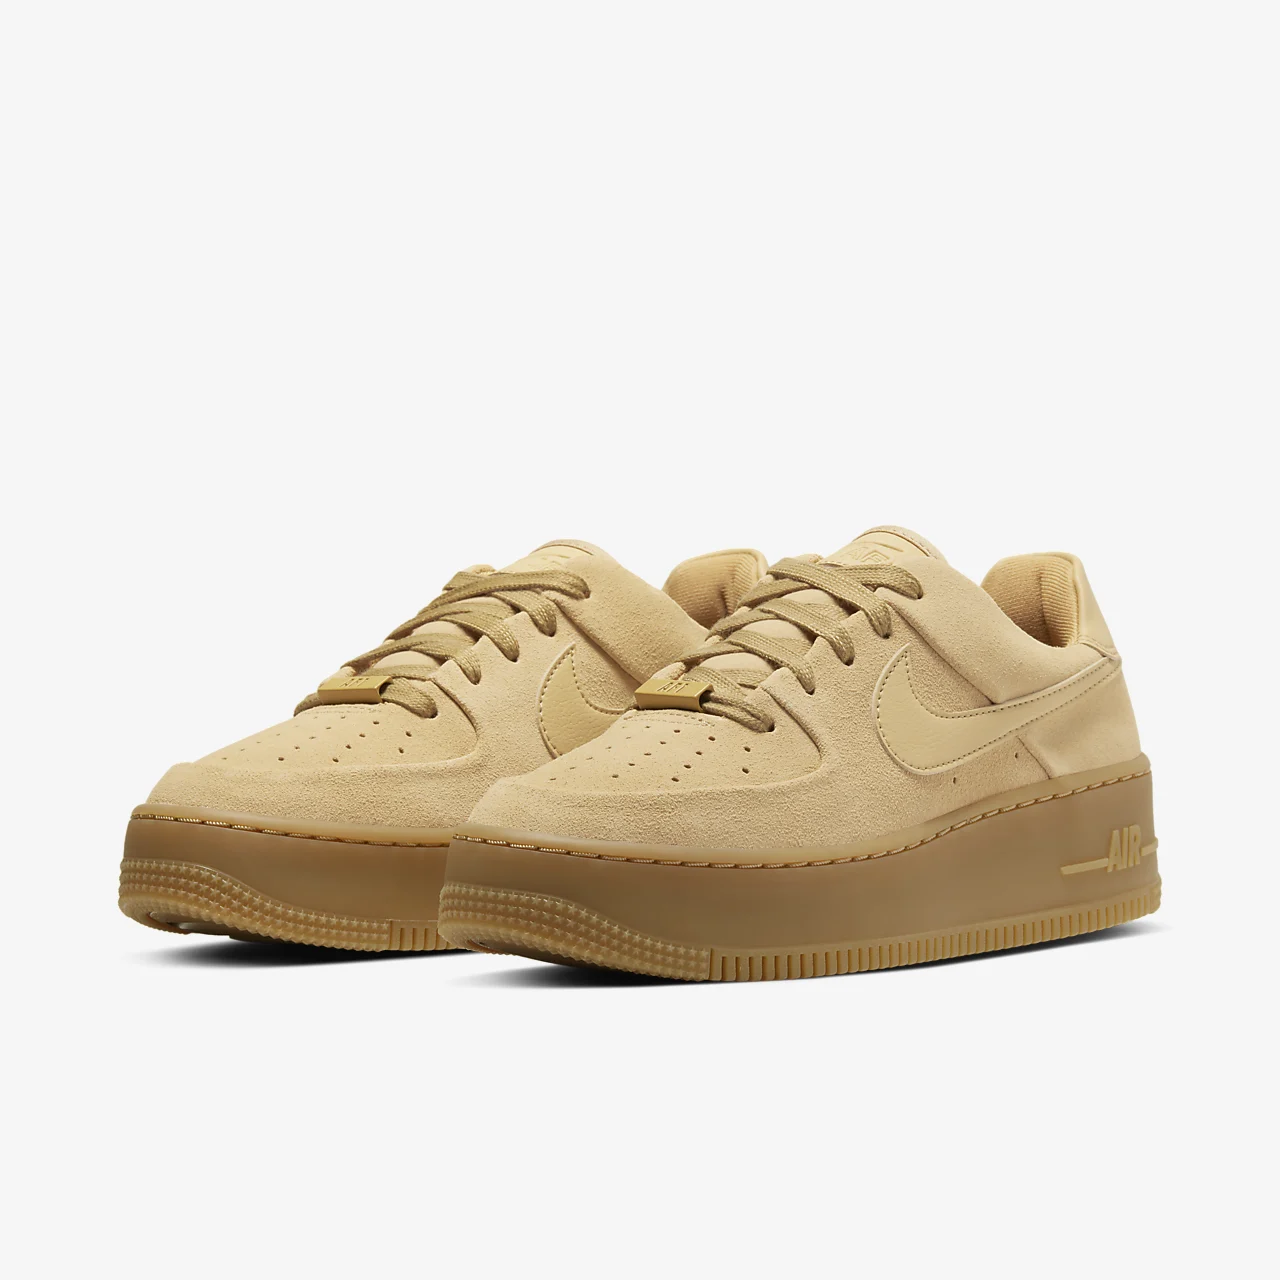 유럽직배송 나이키 NIKE Nike Air Force 1 Sage Low Women's Shoe CT3432-700